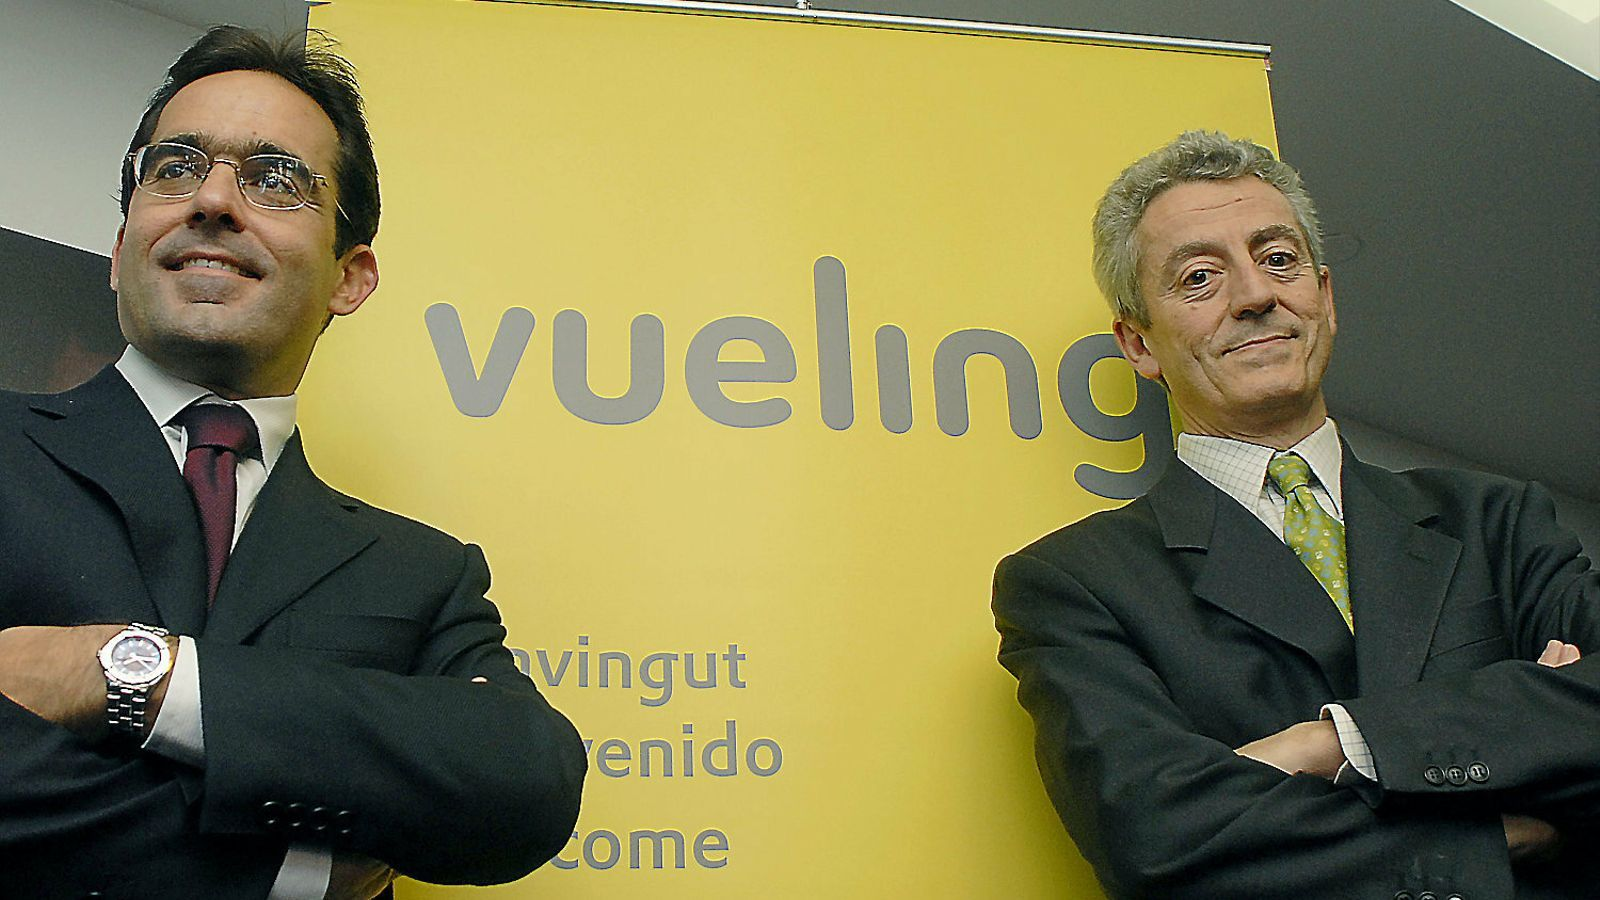 Vueling, la 'start-up' que va fer enlairar el Prat